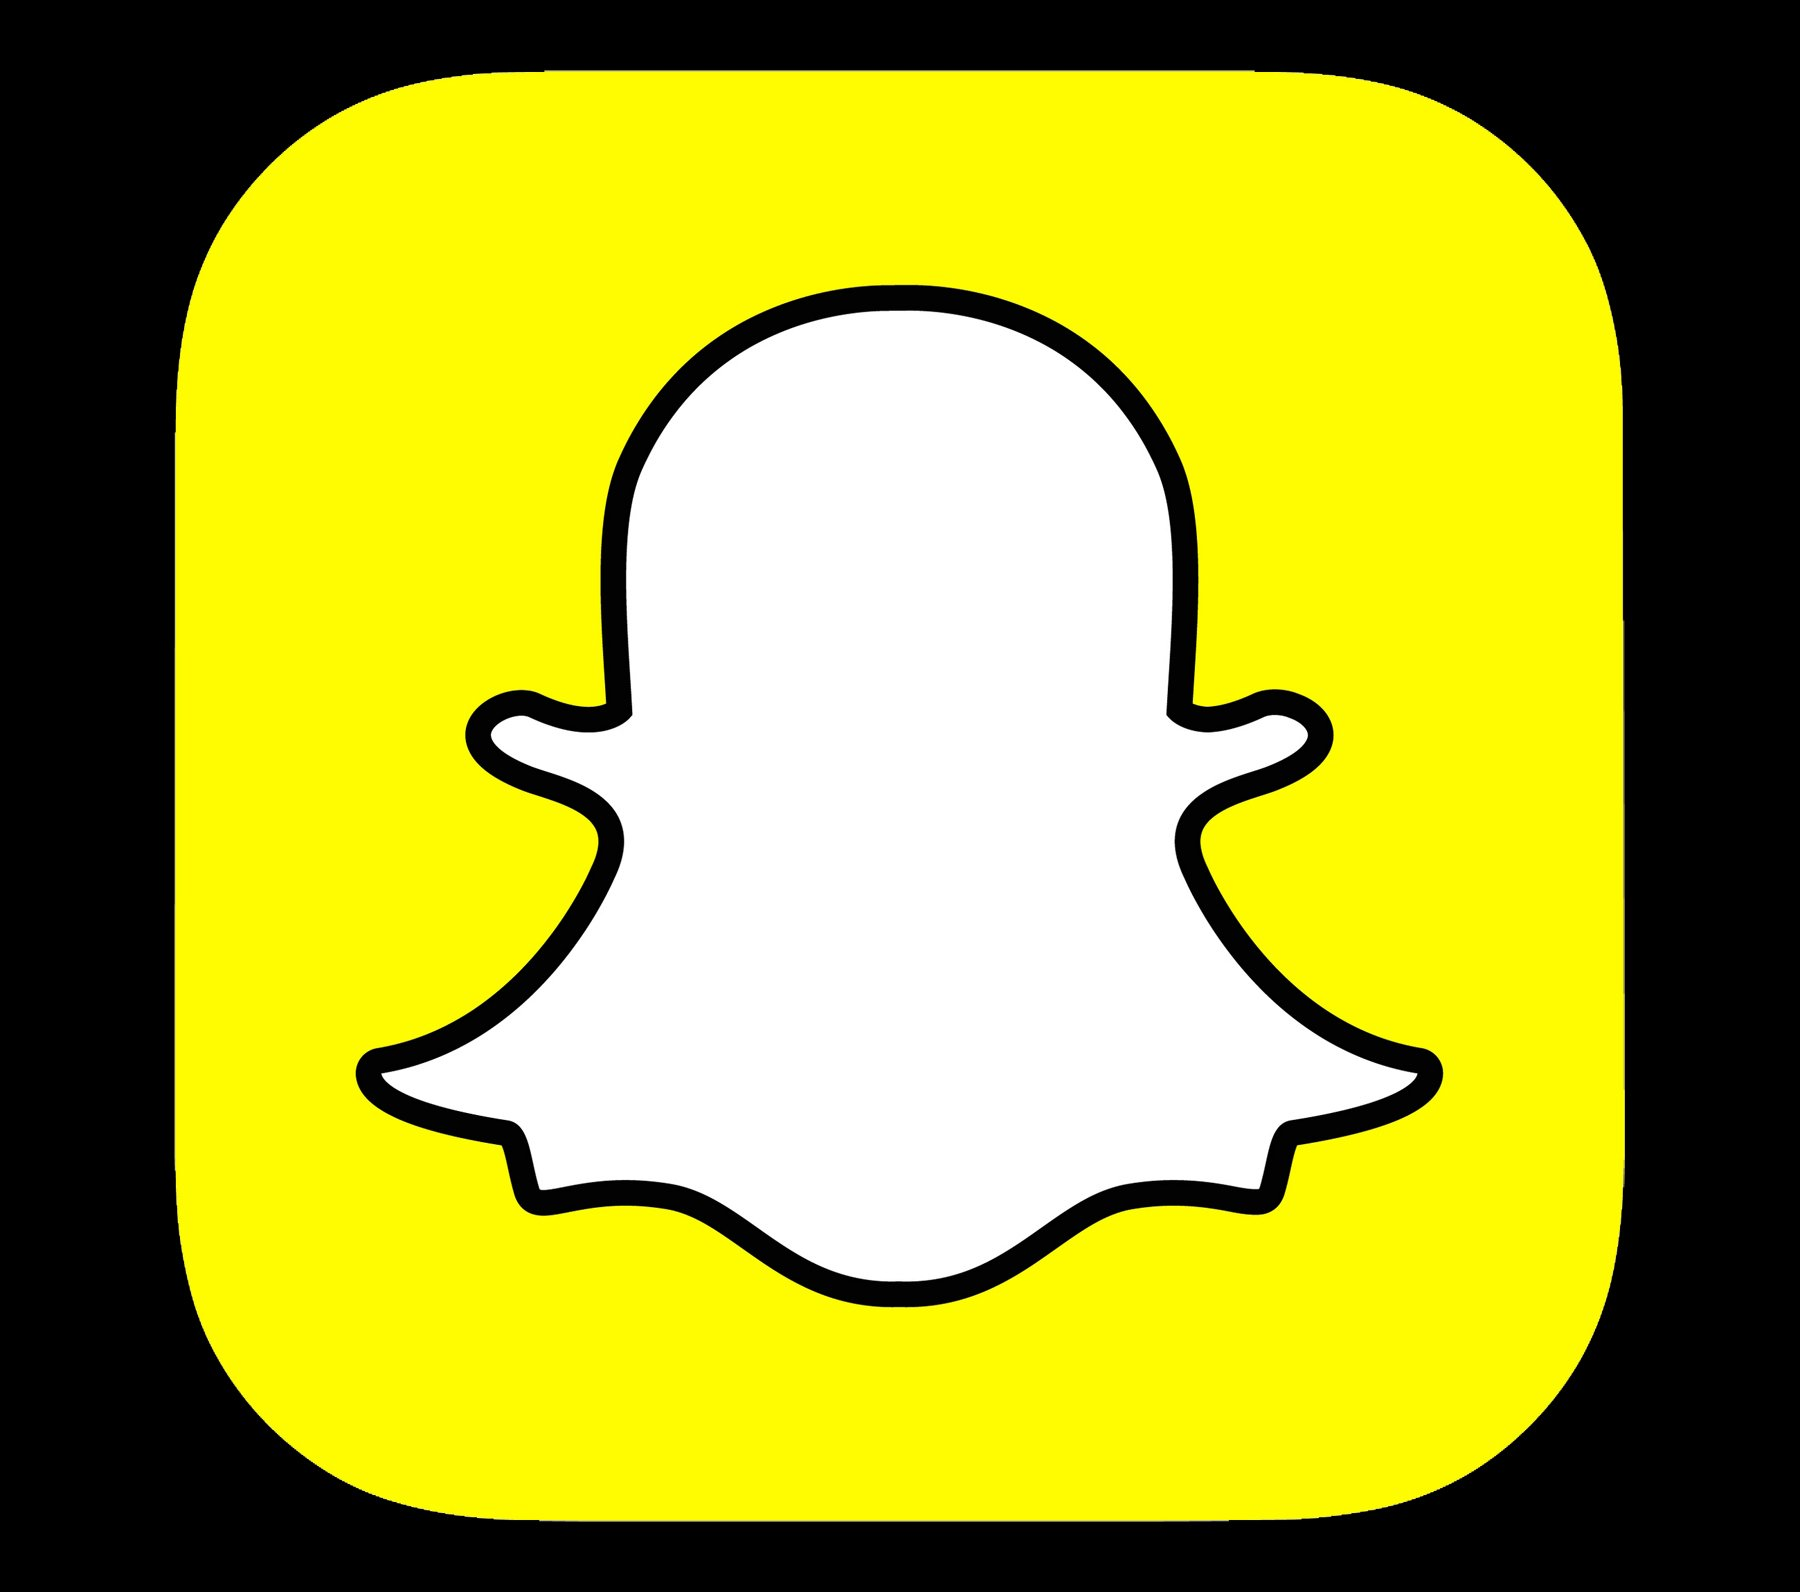 Snapchat Logo Symbol Meaning History And Evolution Interiors Inside Ideas Interiors design about Everything [magnanprojects.com]